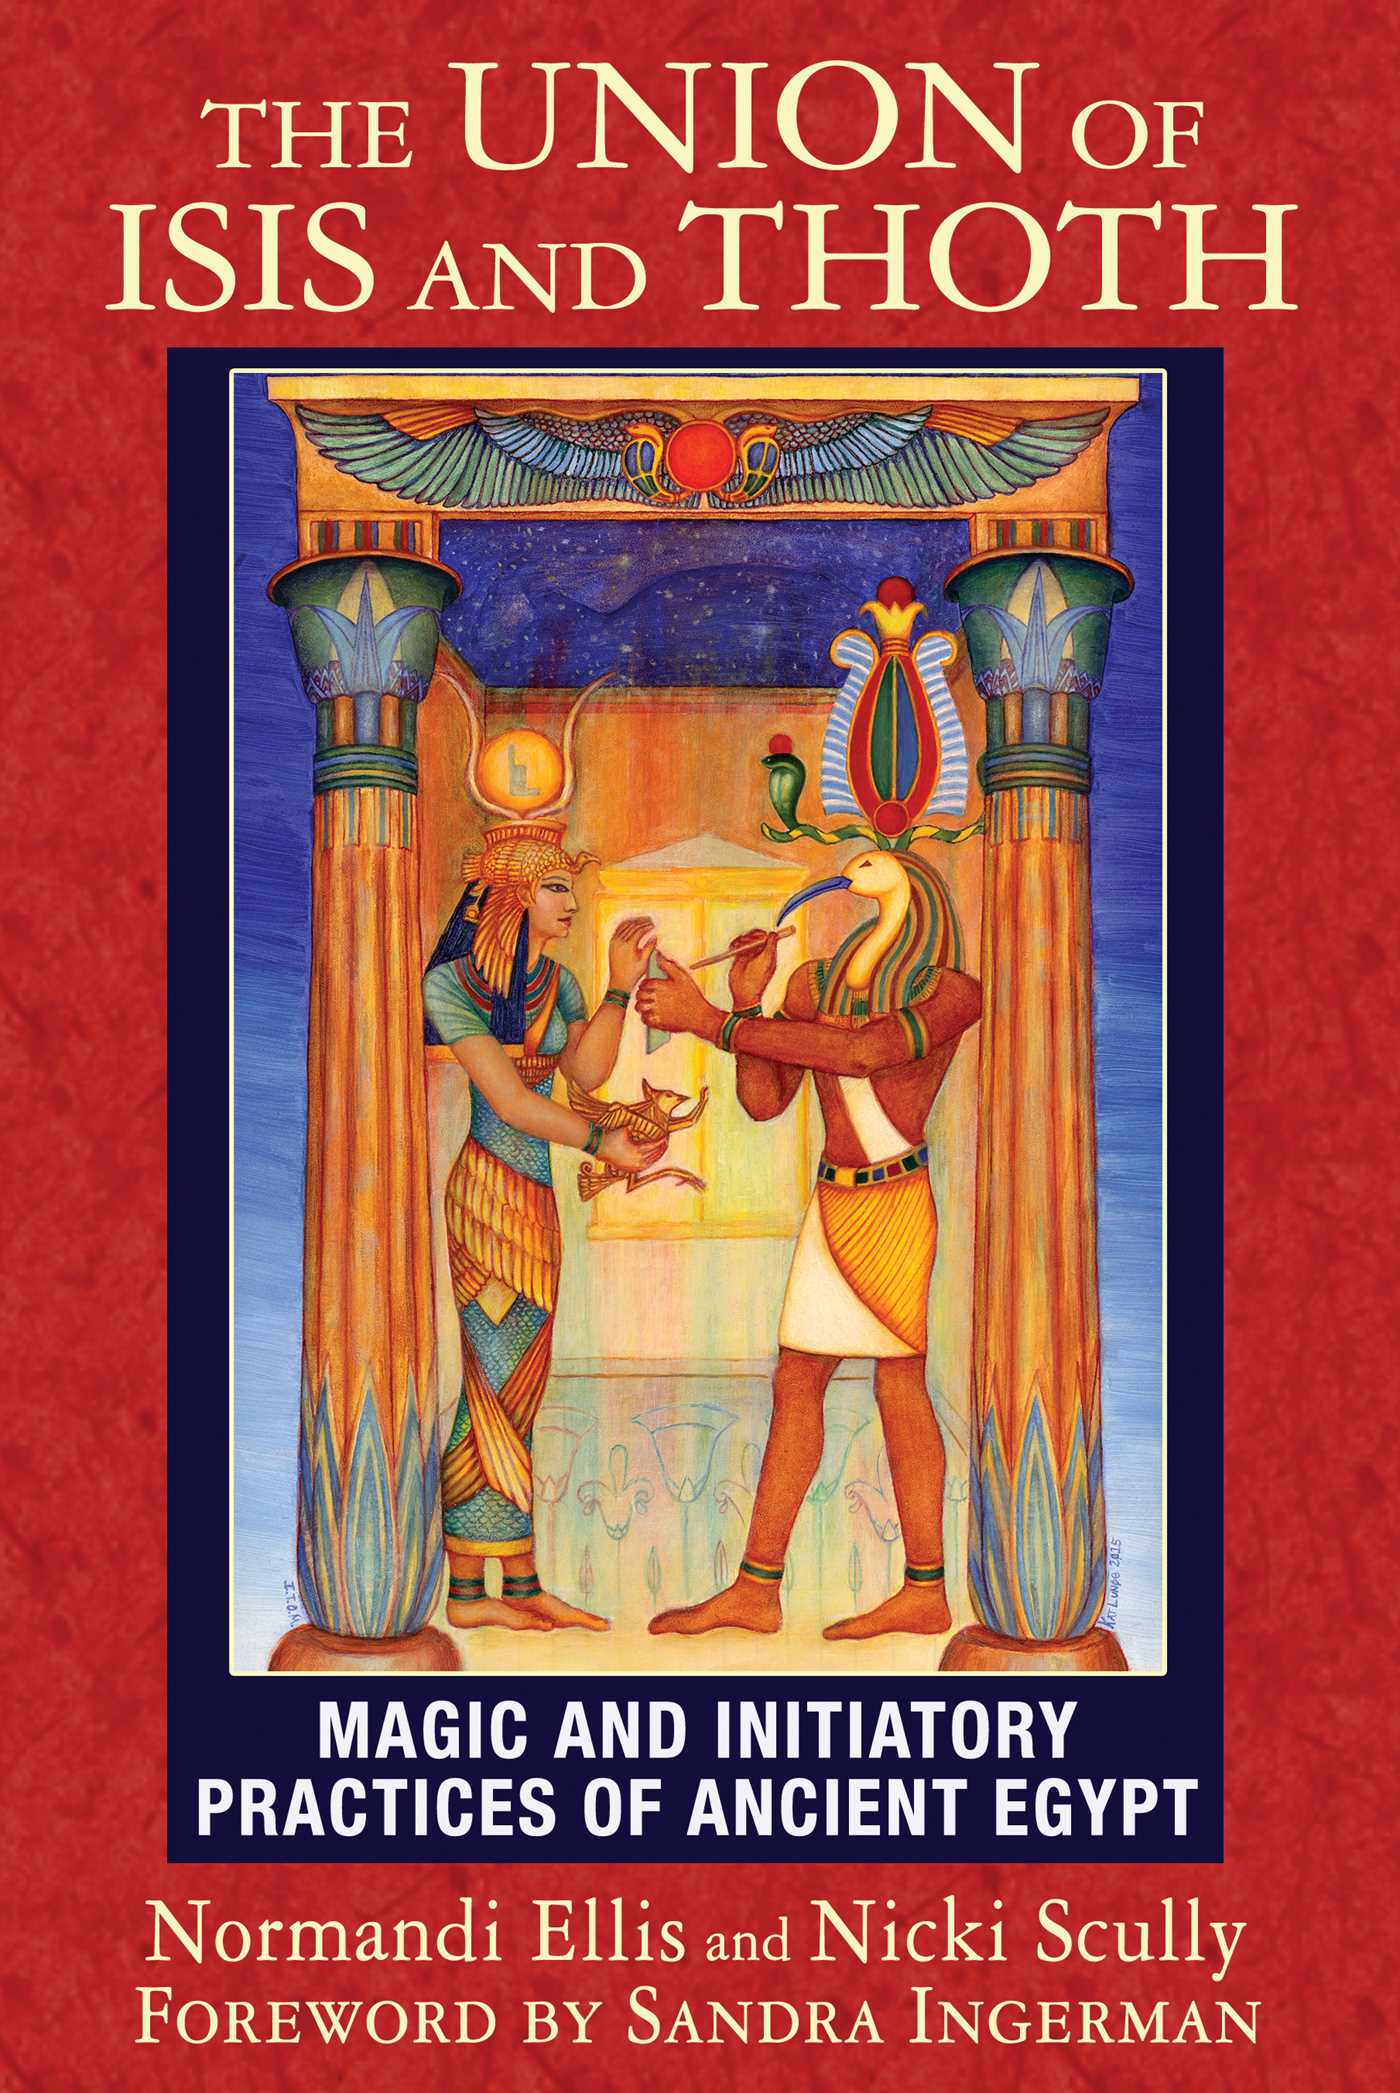 File Thoth Tarot Cards Box Jpg: The Union Of Isis And Thoth